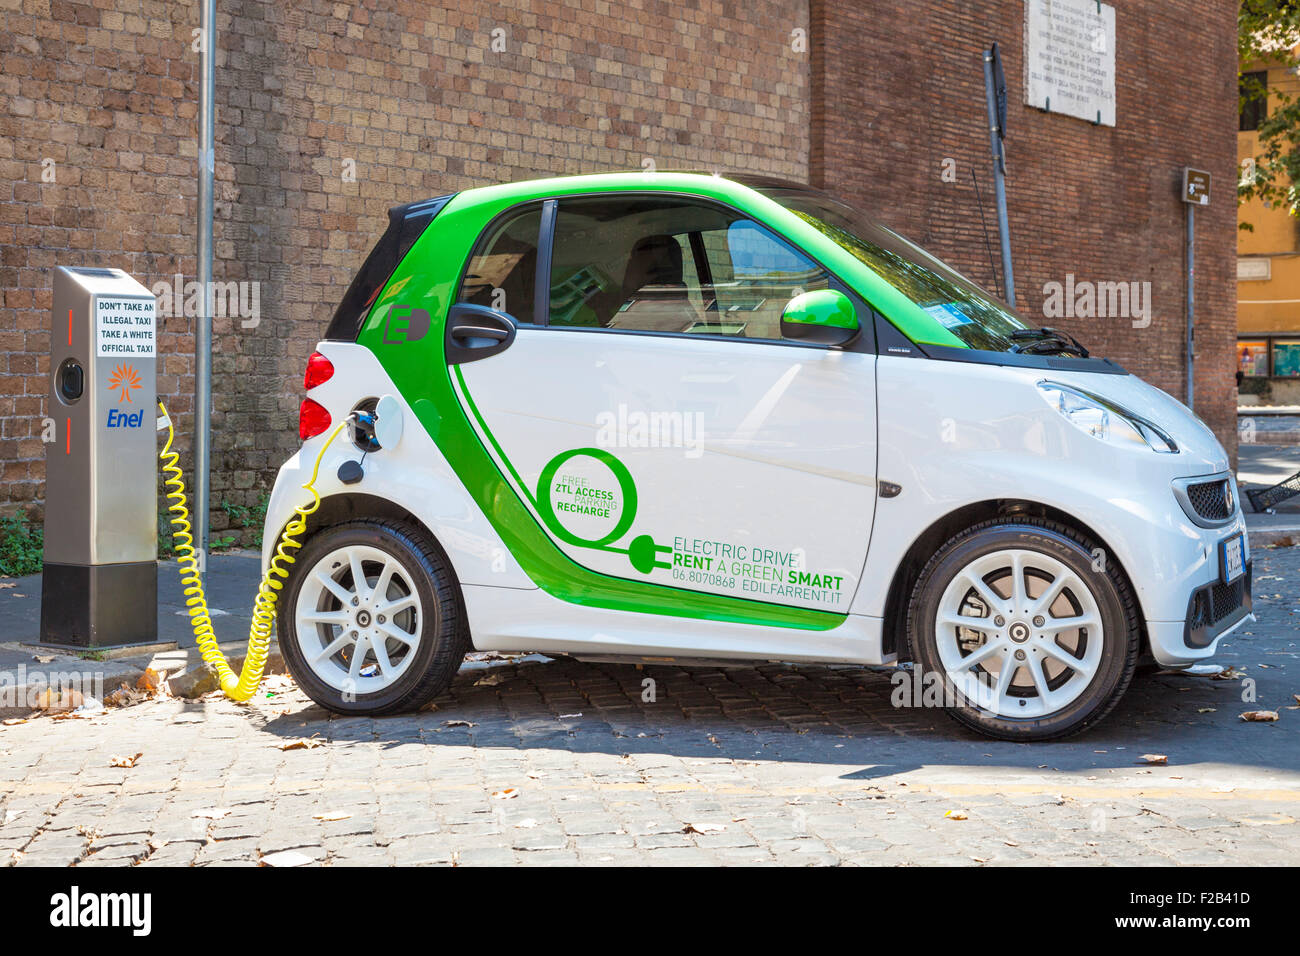 Smart fortwo electric drive Electric car plugged in at an electric car charging point in Rome Roma Lazio Italy EU - Stock Image